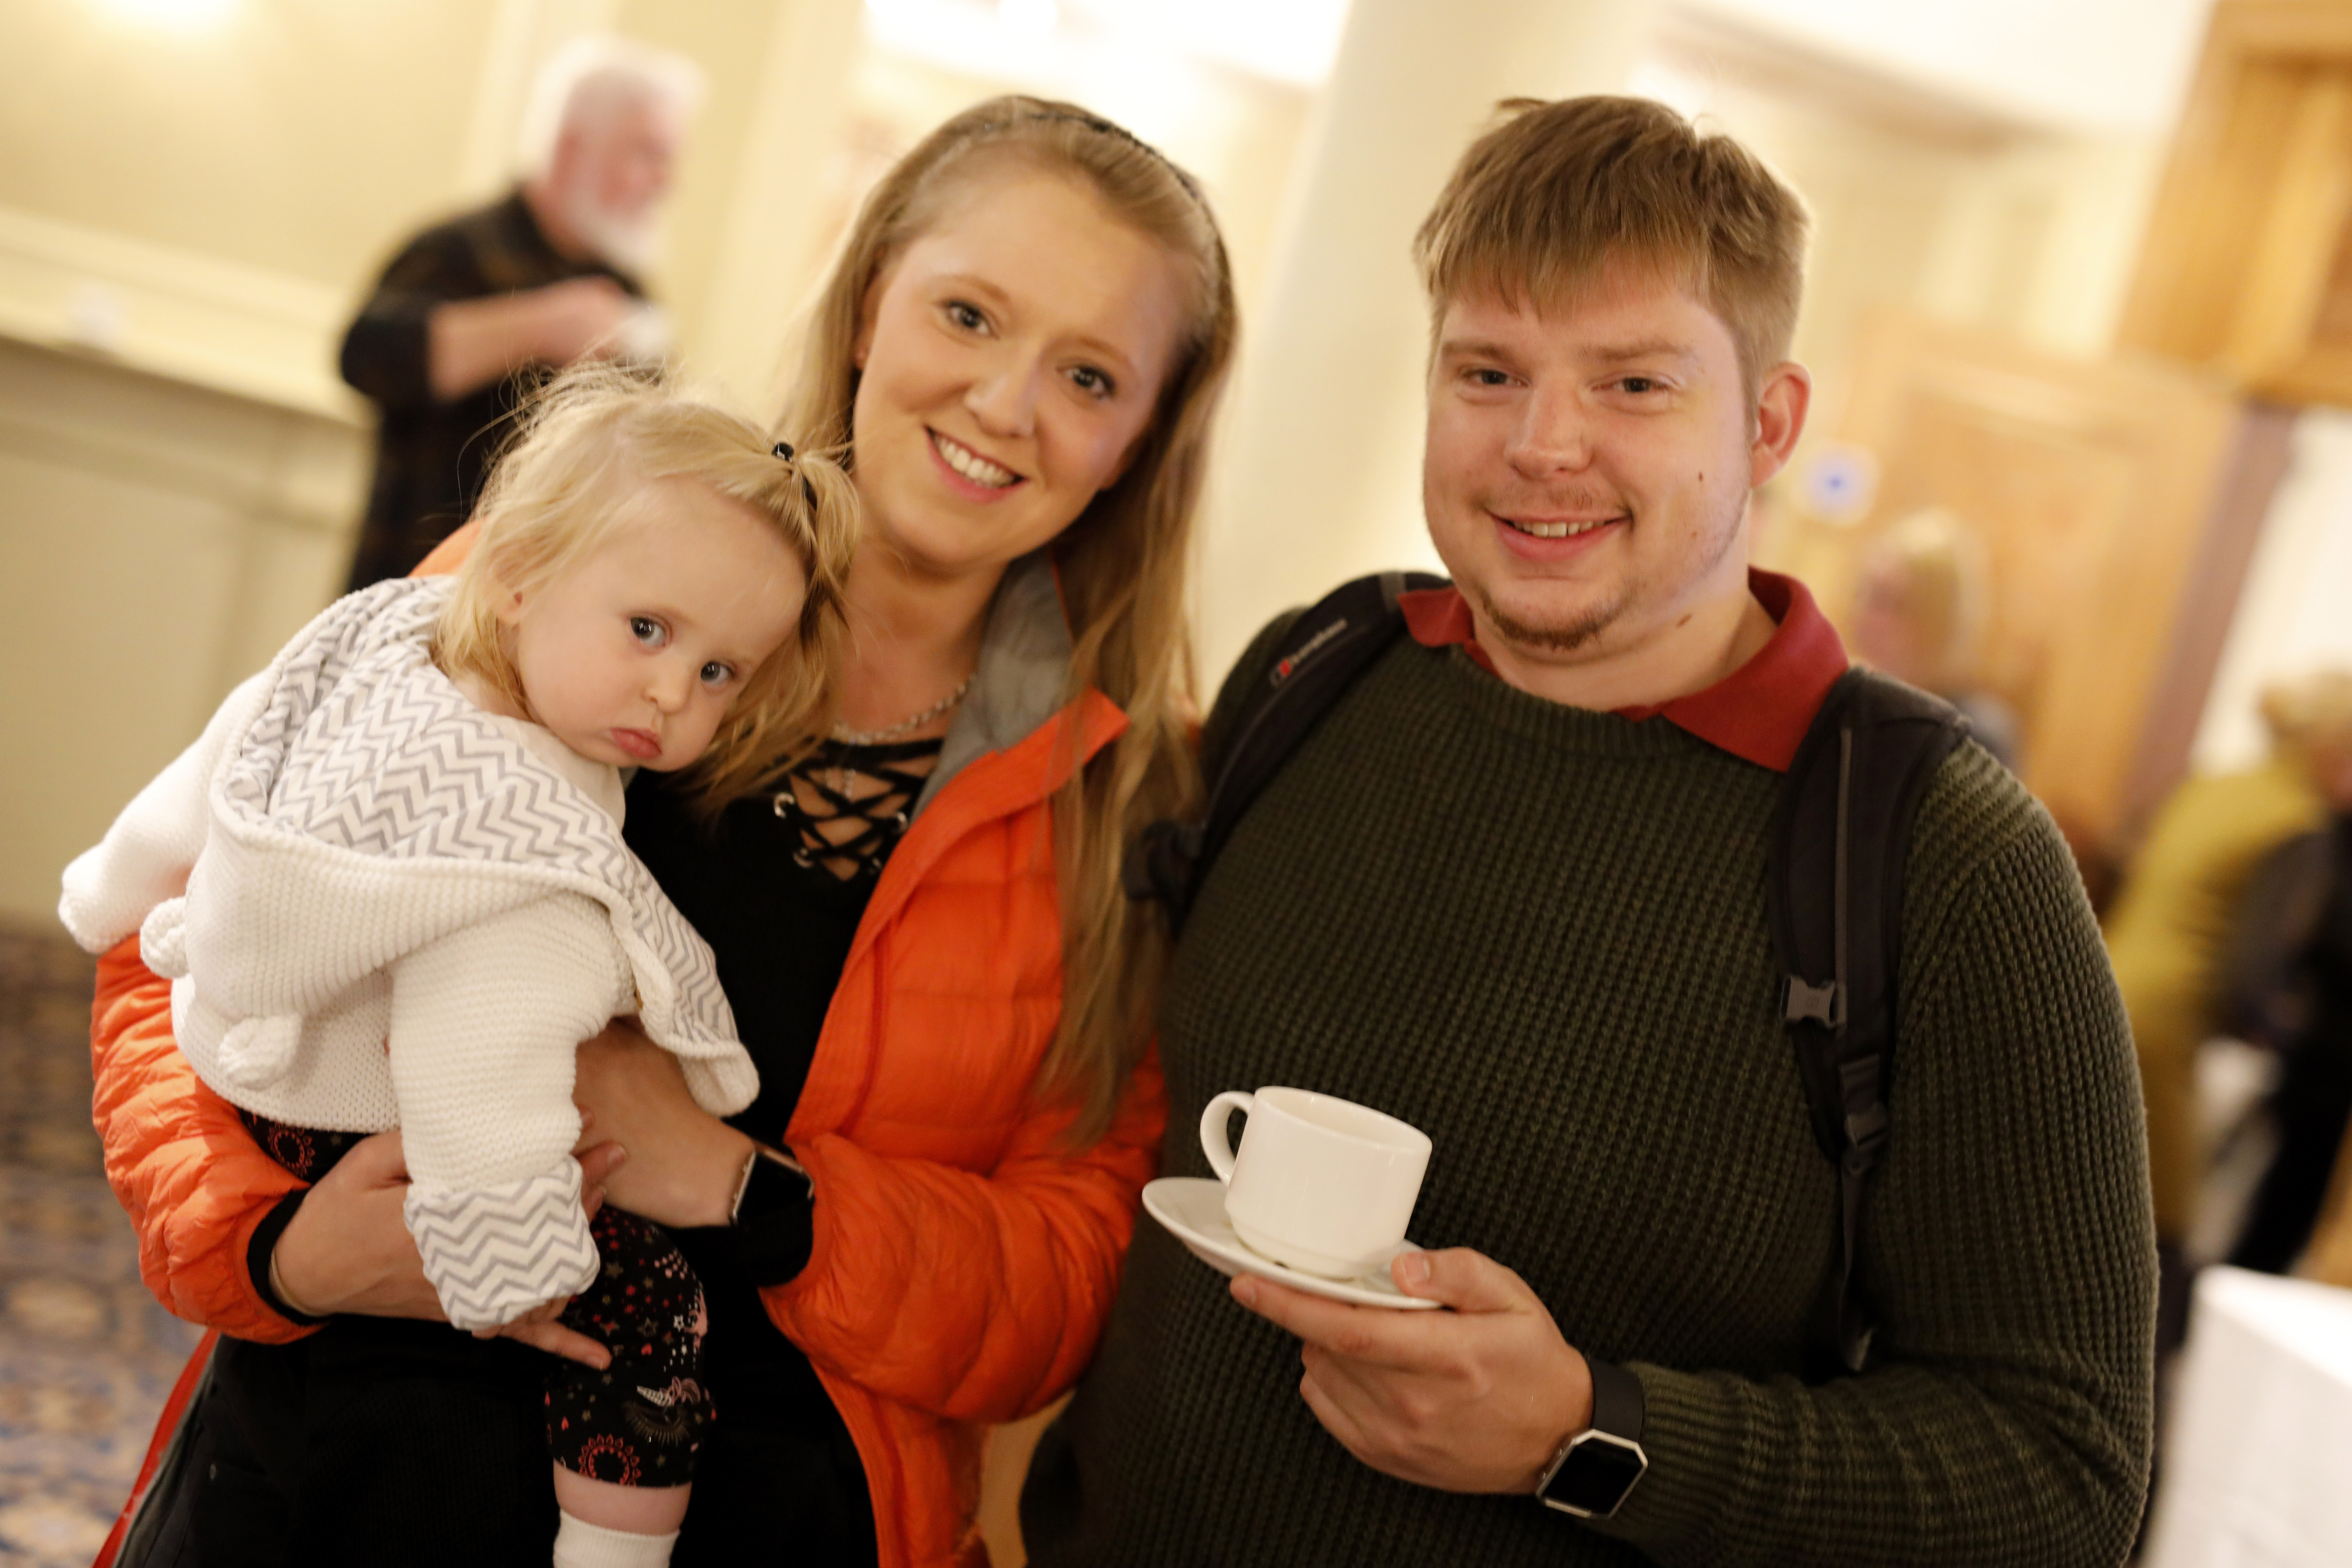 A family at Open Day.